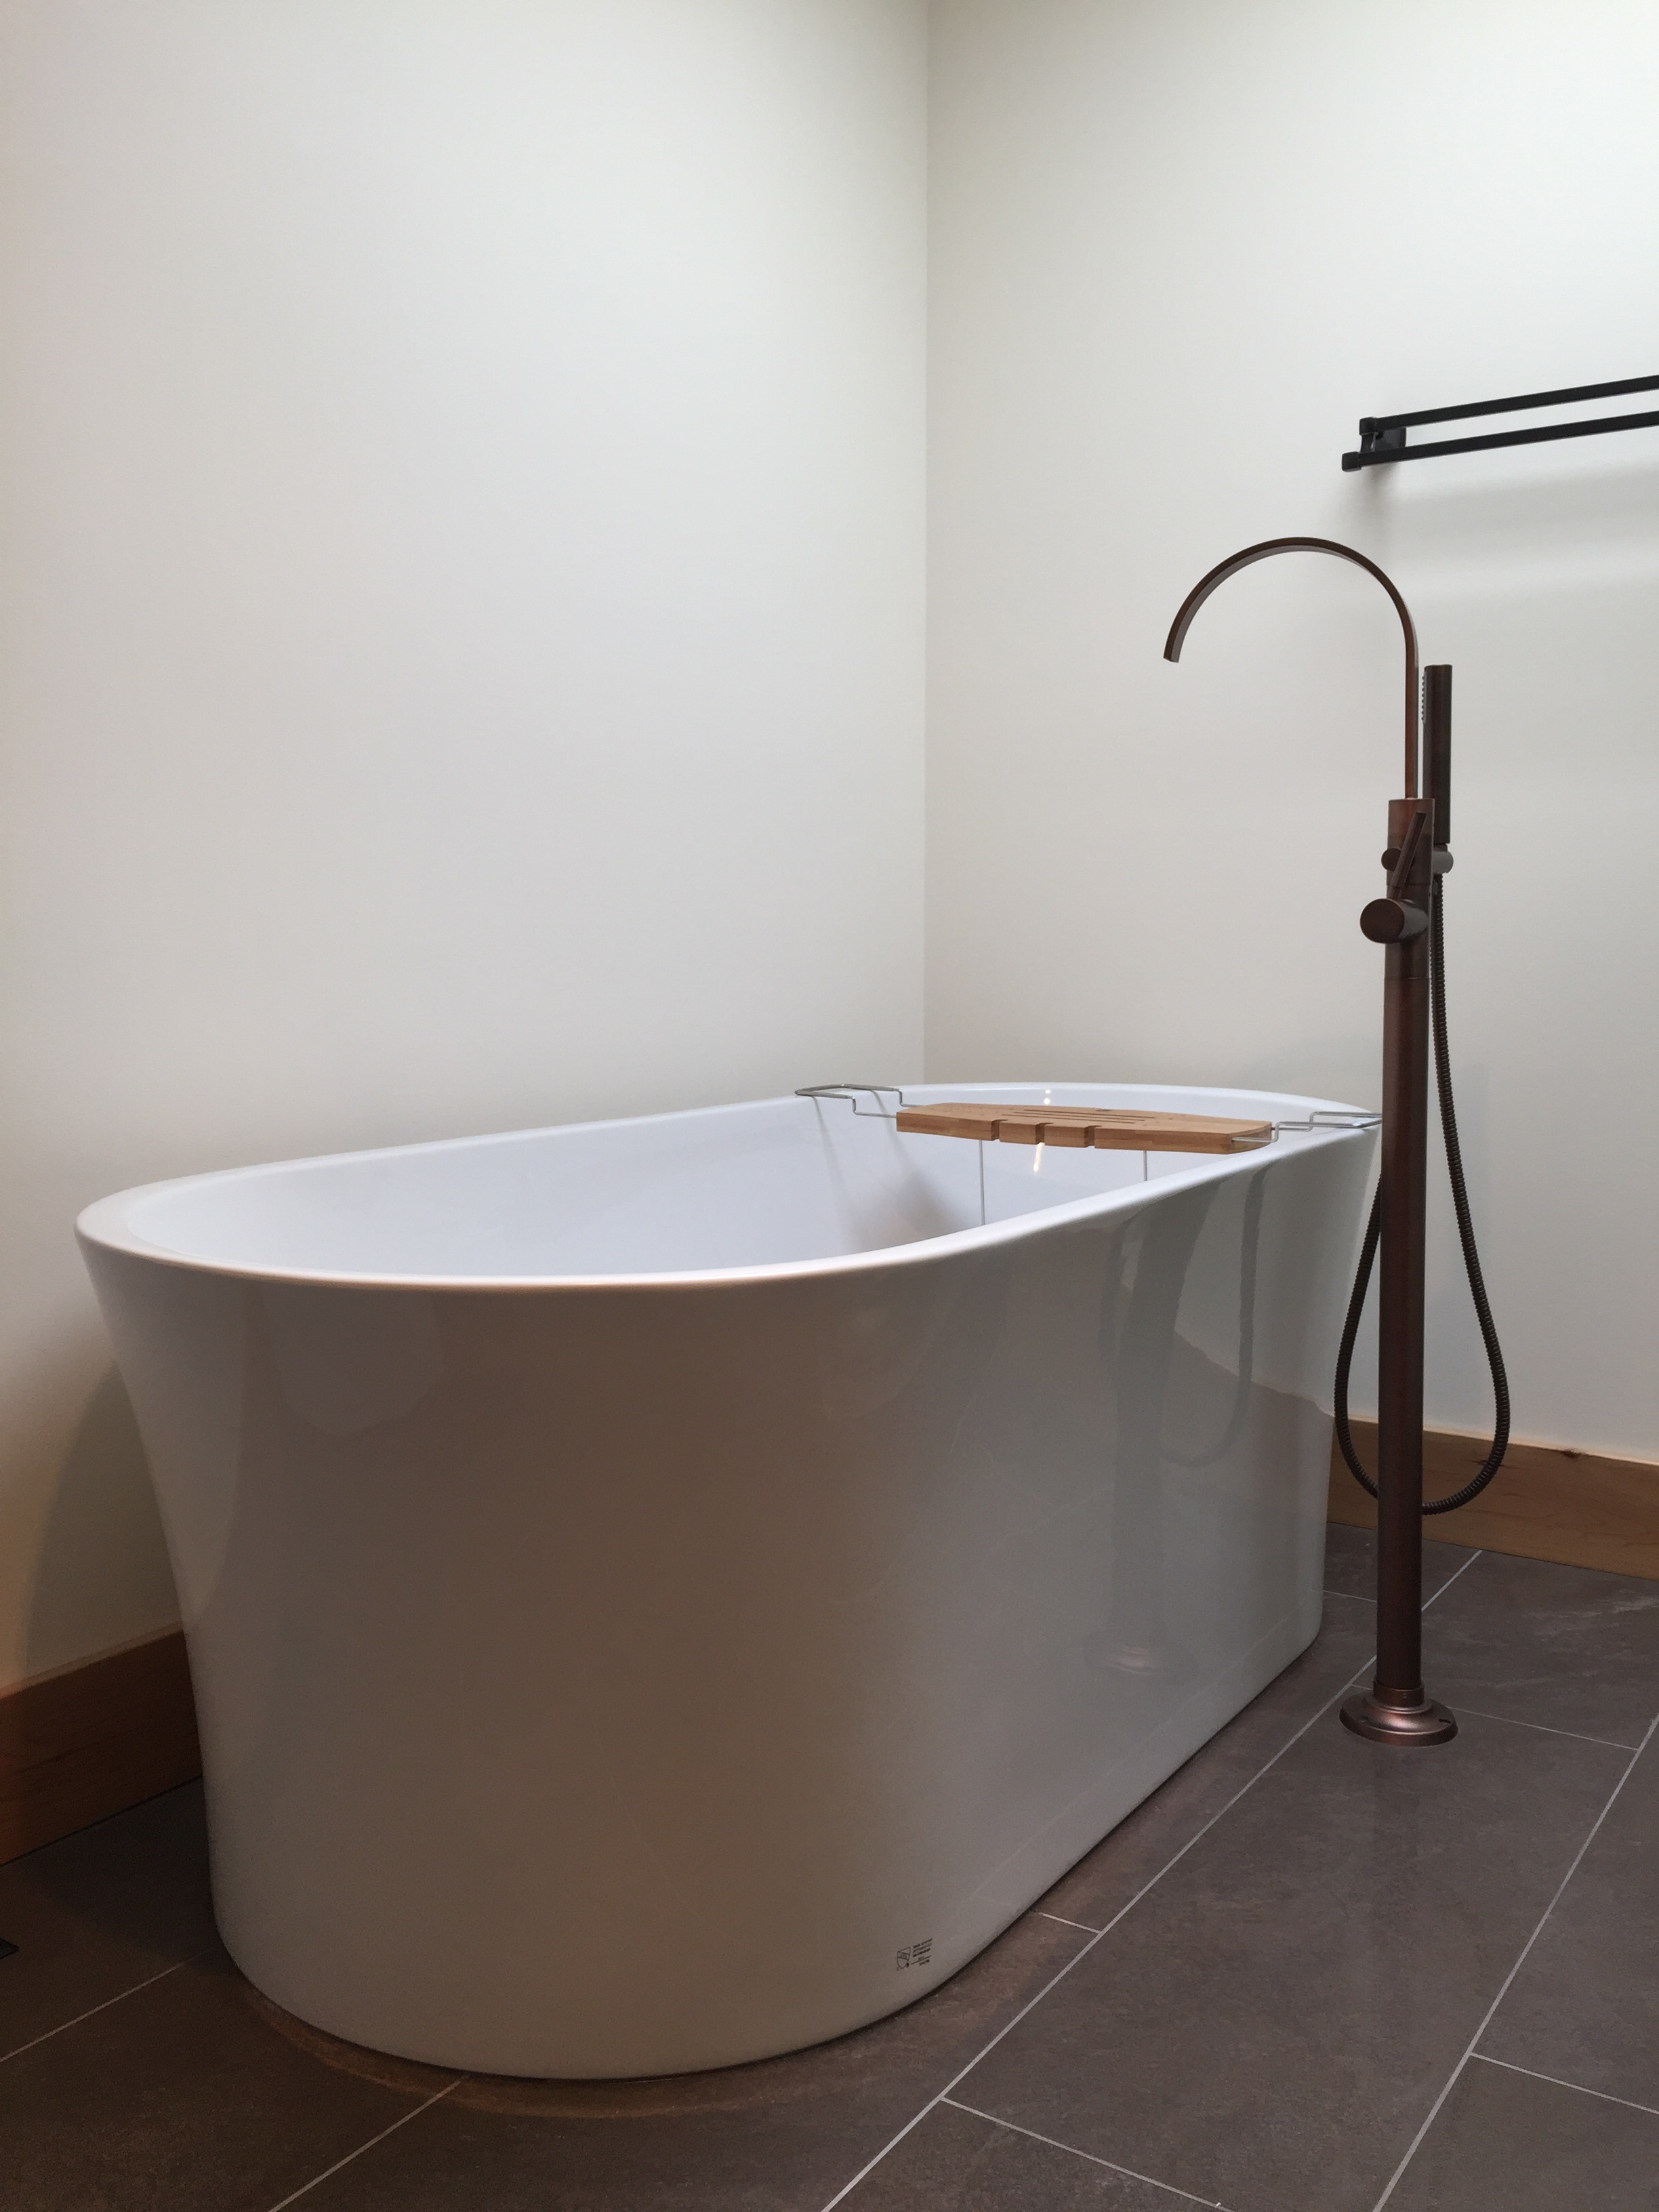 Freestanding bathtub and aged bronze tub filler.